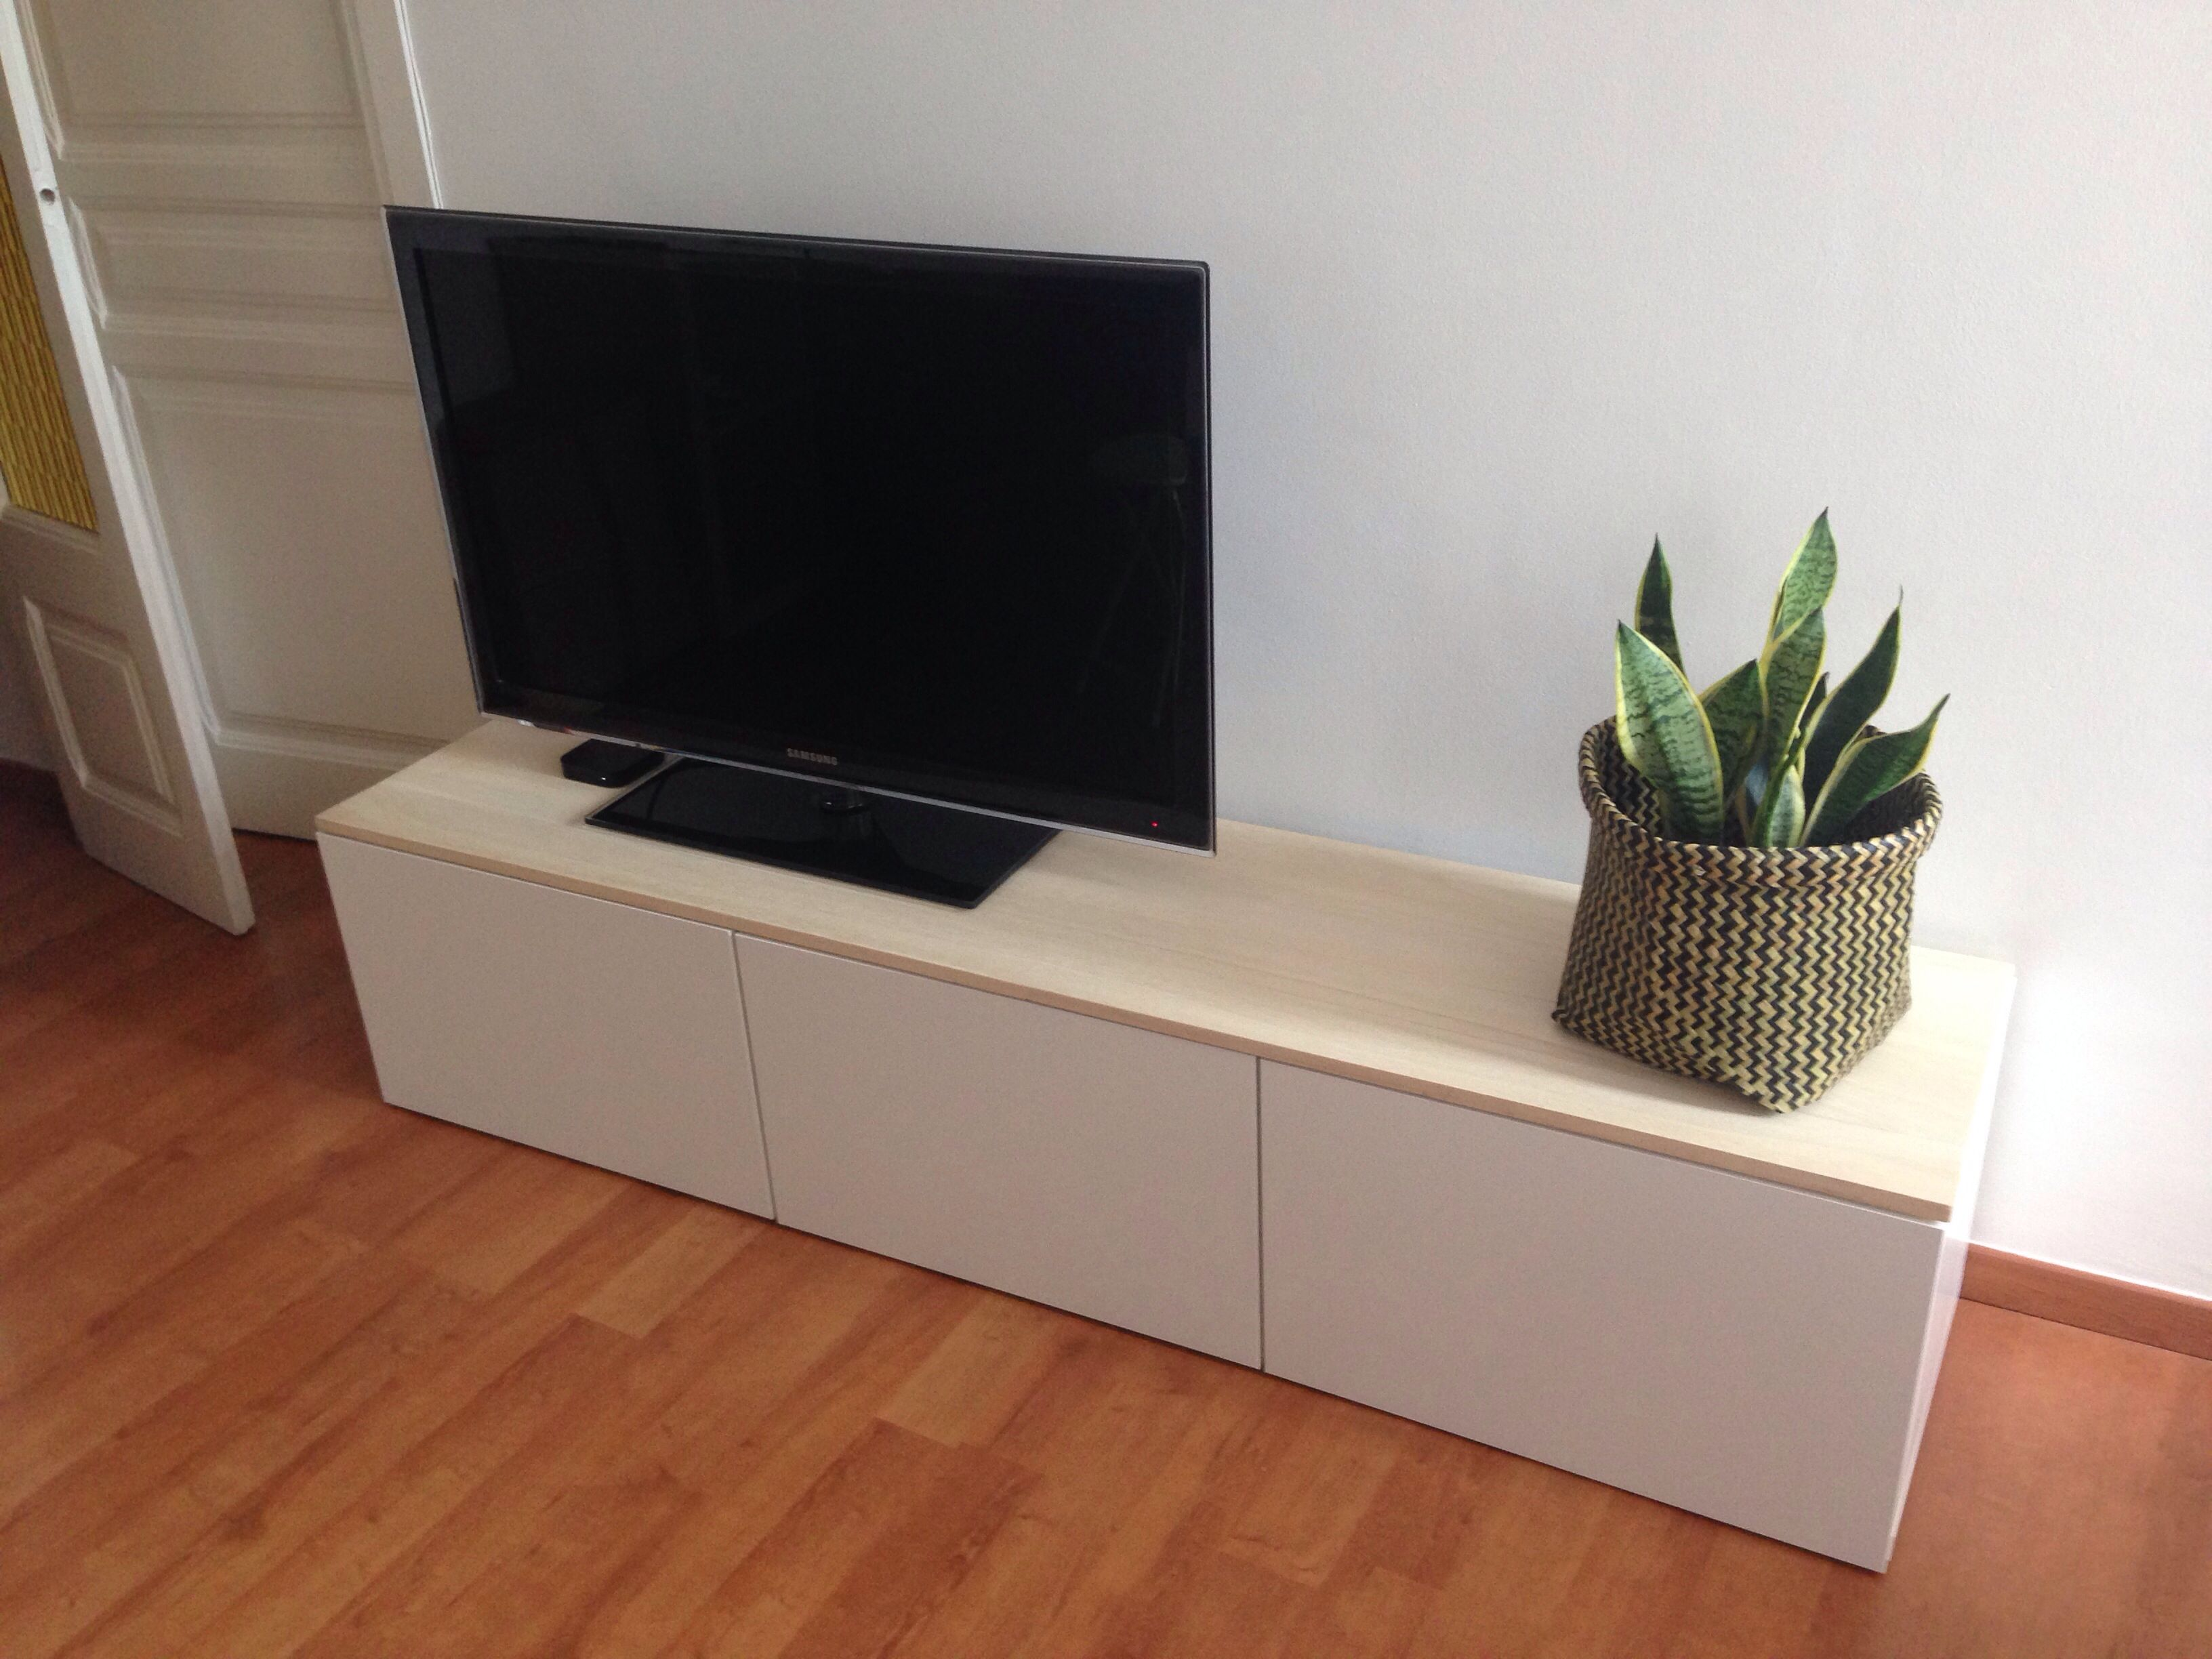 Mueble Blanco Ikea Mueble Tv Besta Blanco De Ikea Decorado Con Tablón De